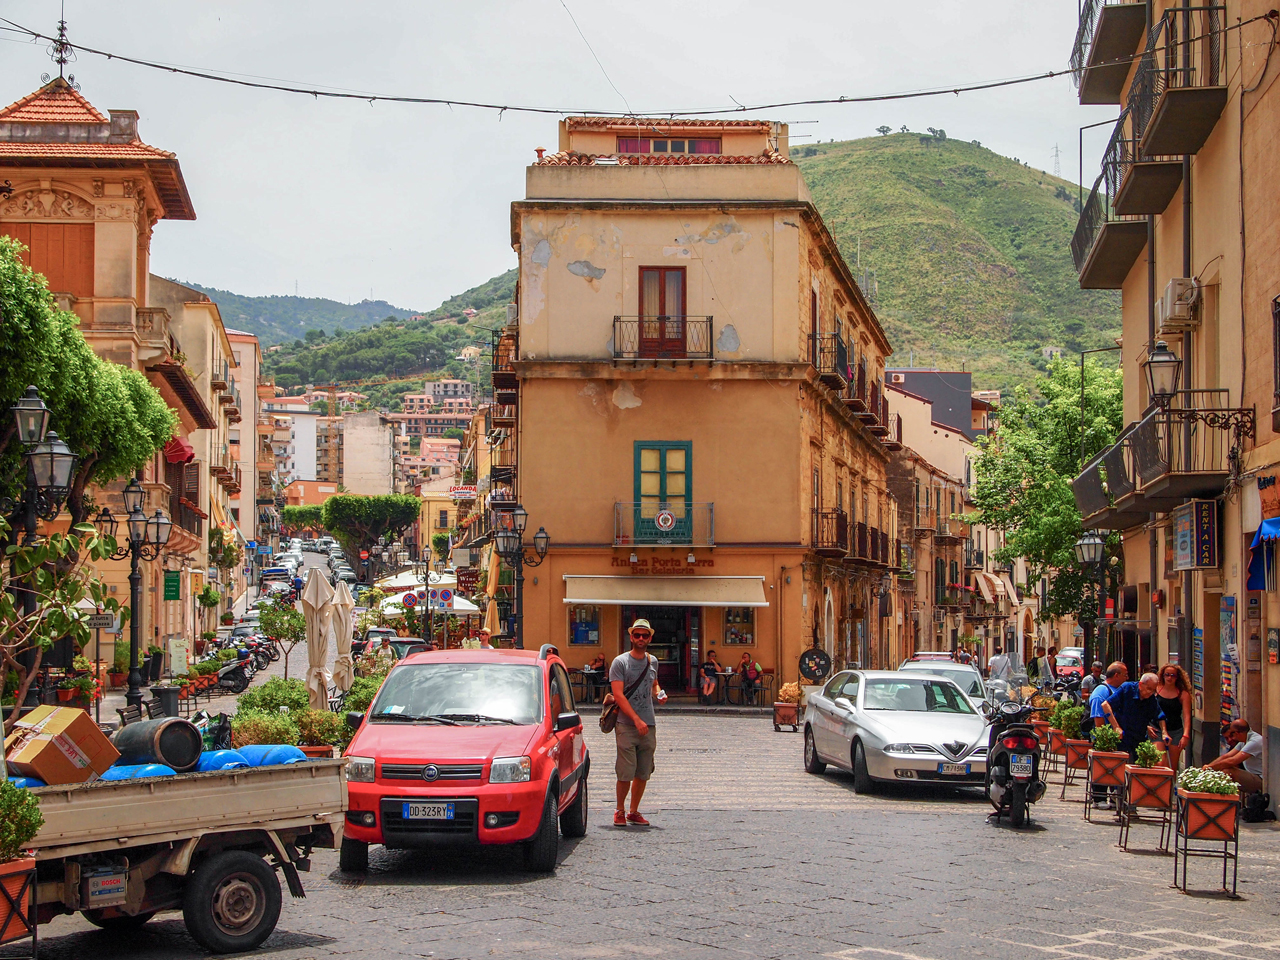 Wandering through the streets of Cefal ù